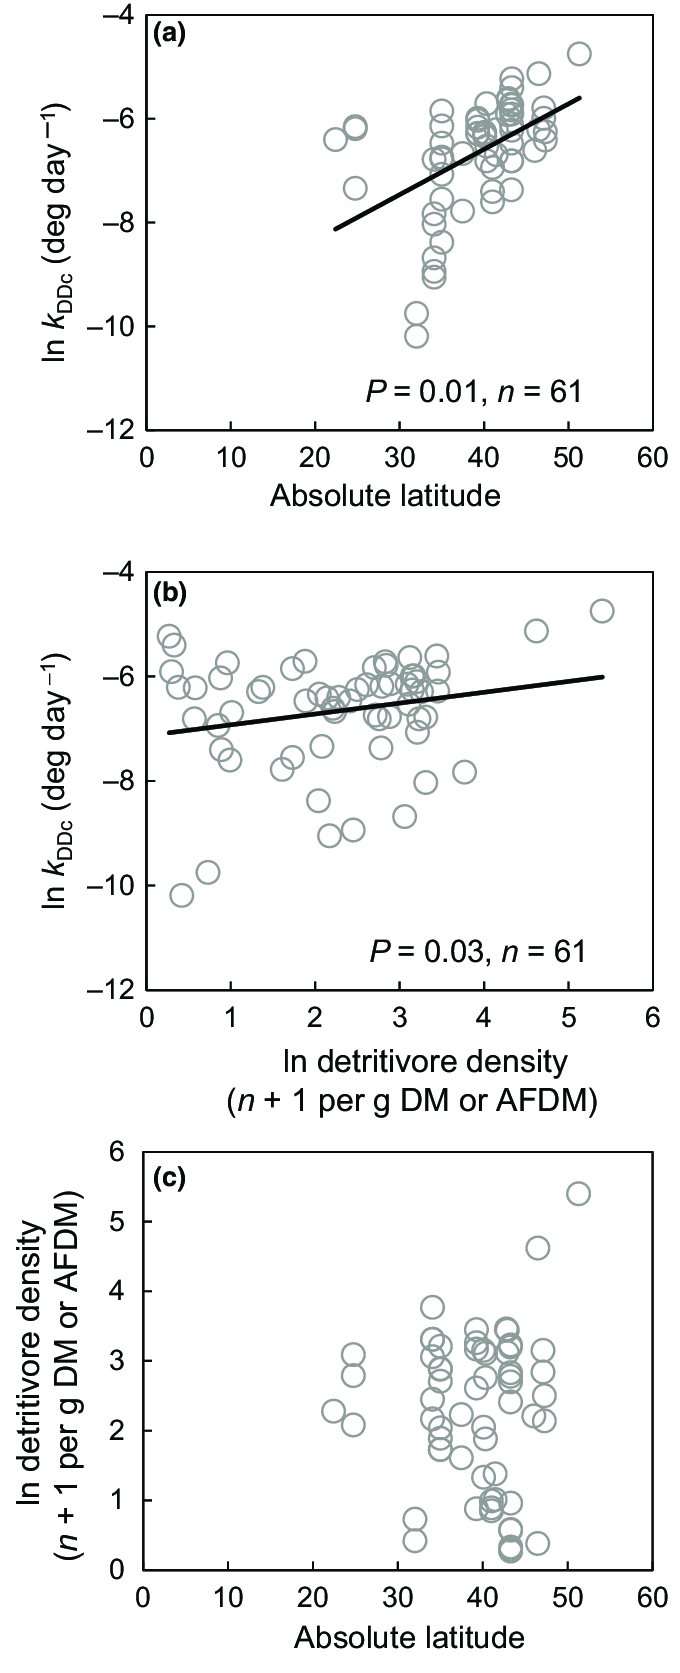 hight resolution of relationships between litter breakdown absolute latitude and detritivore density at t 50